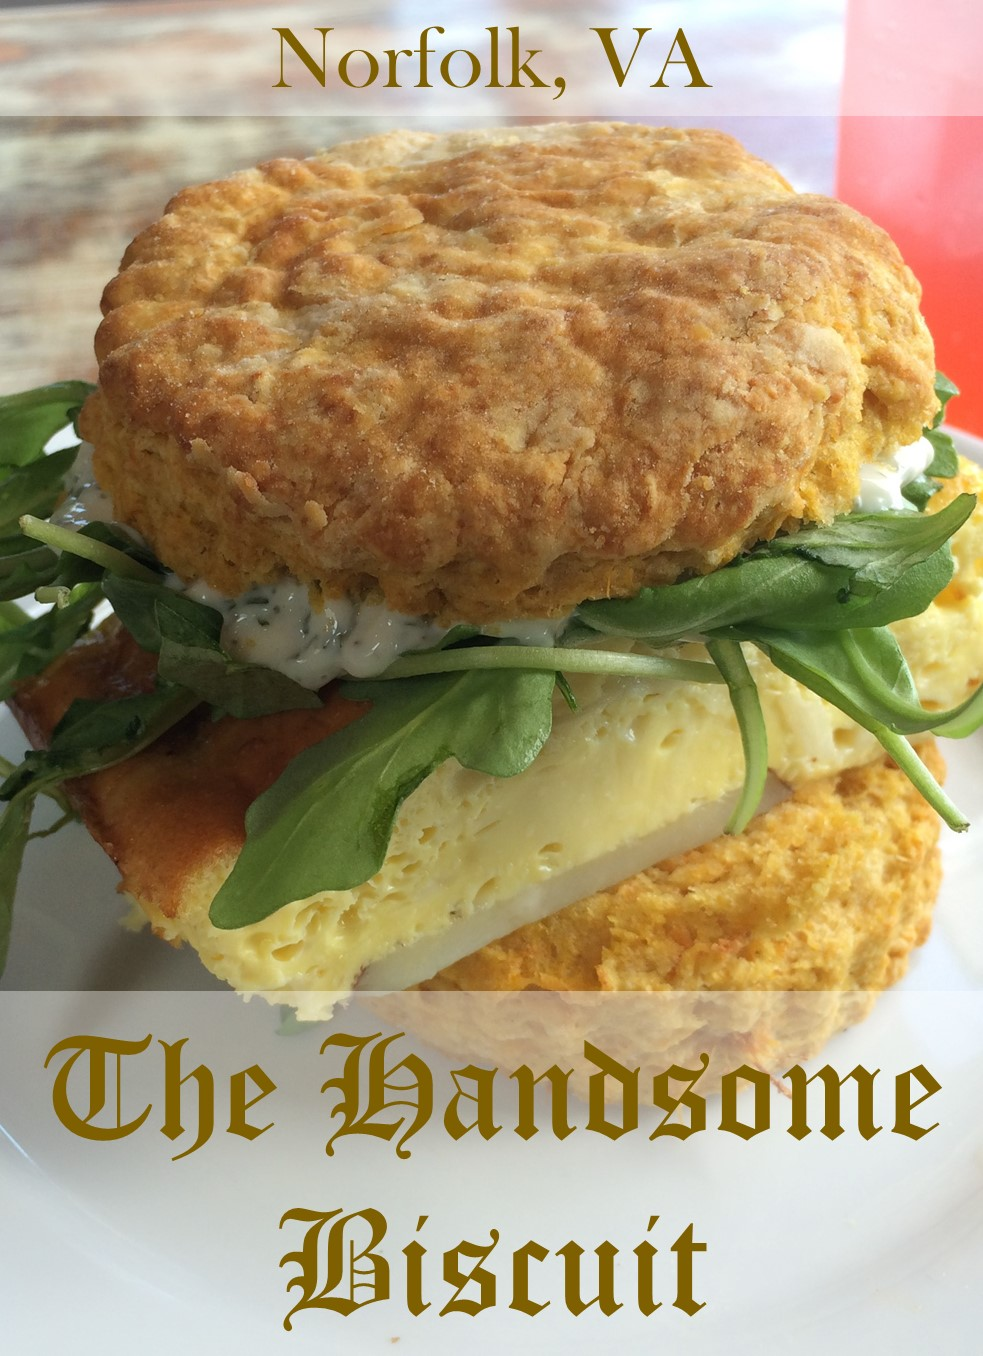 For a damn good sweet potato biscuit in Norfolk, Virginia, loaded with your favorite breakfast or lunch fixins, look no further than the Handsome Biscuit.